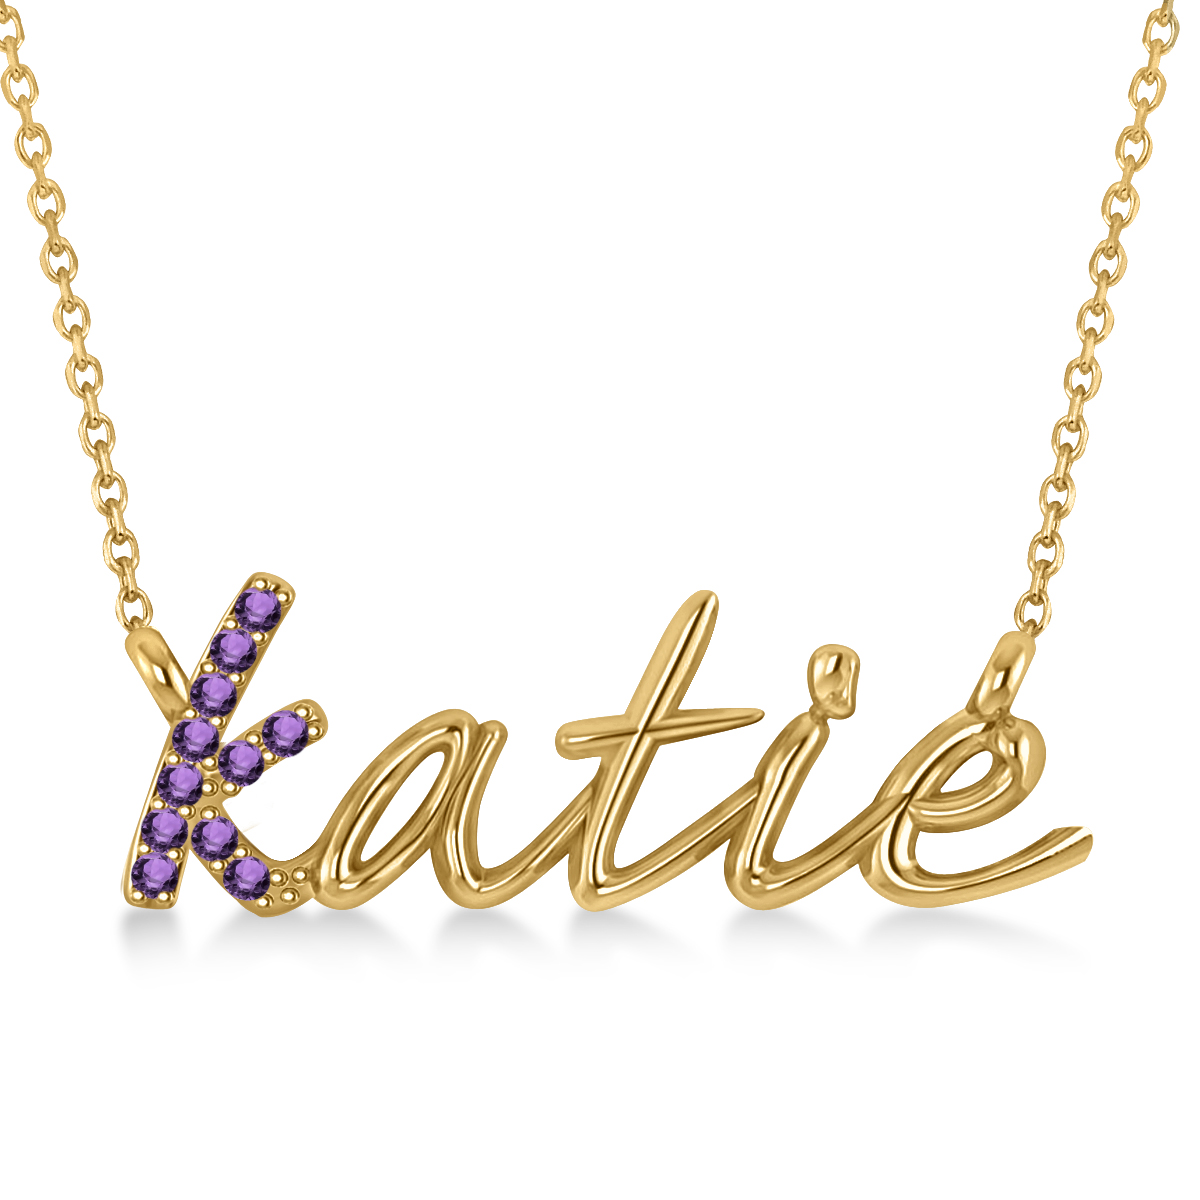 Personalized Amethyst Nameplate Pendant Necklace 14k Yellow Gold